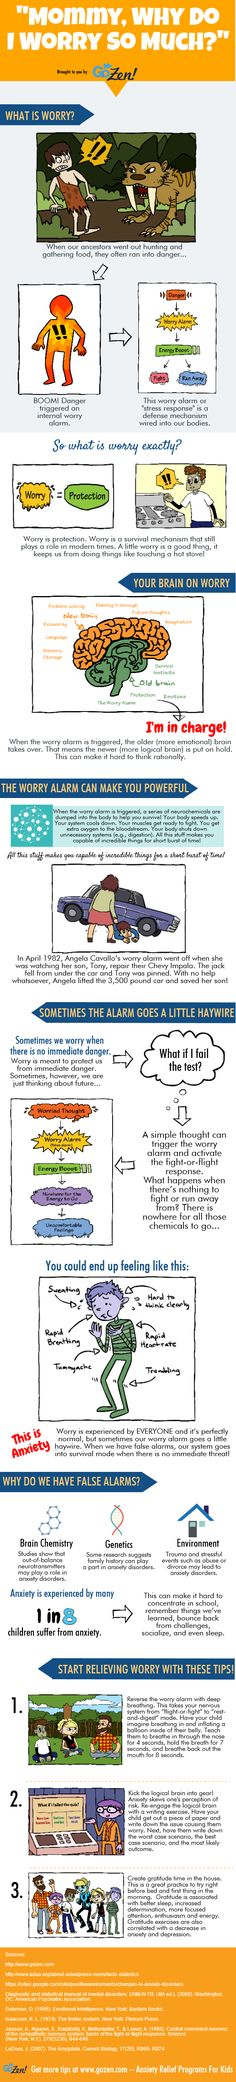 """Mommy, Why Do I Worry So Much?"" Anxiety Explained via Infographic"